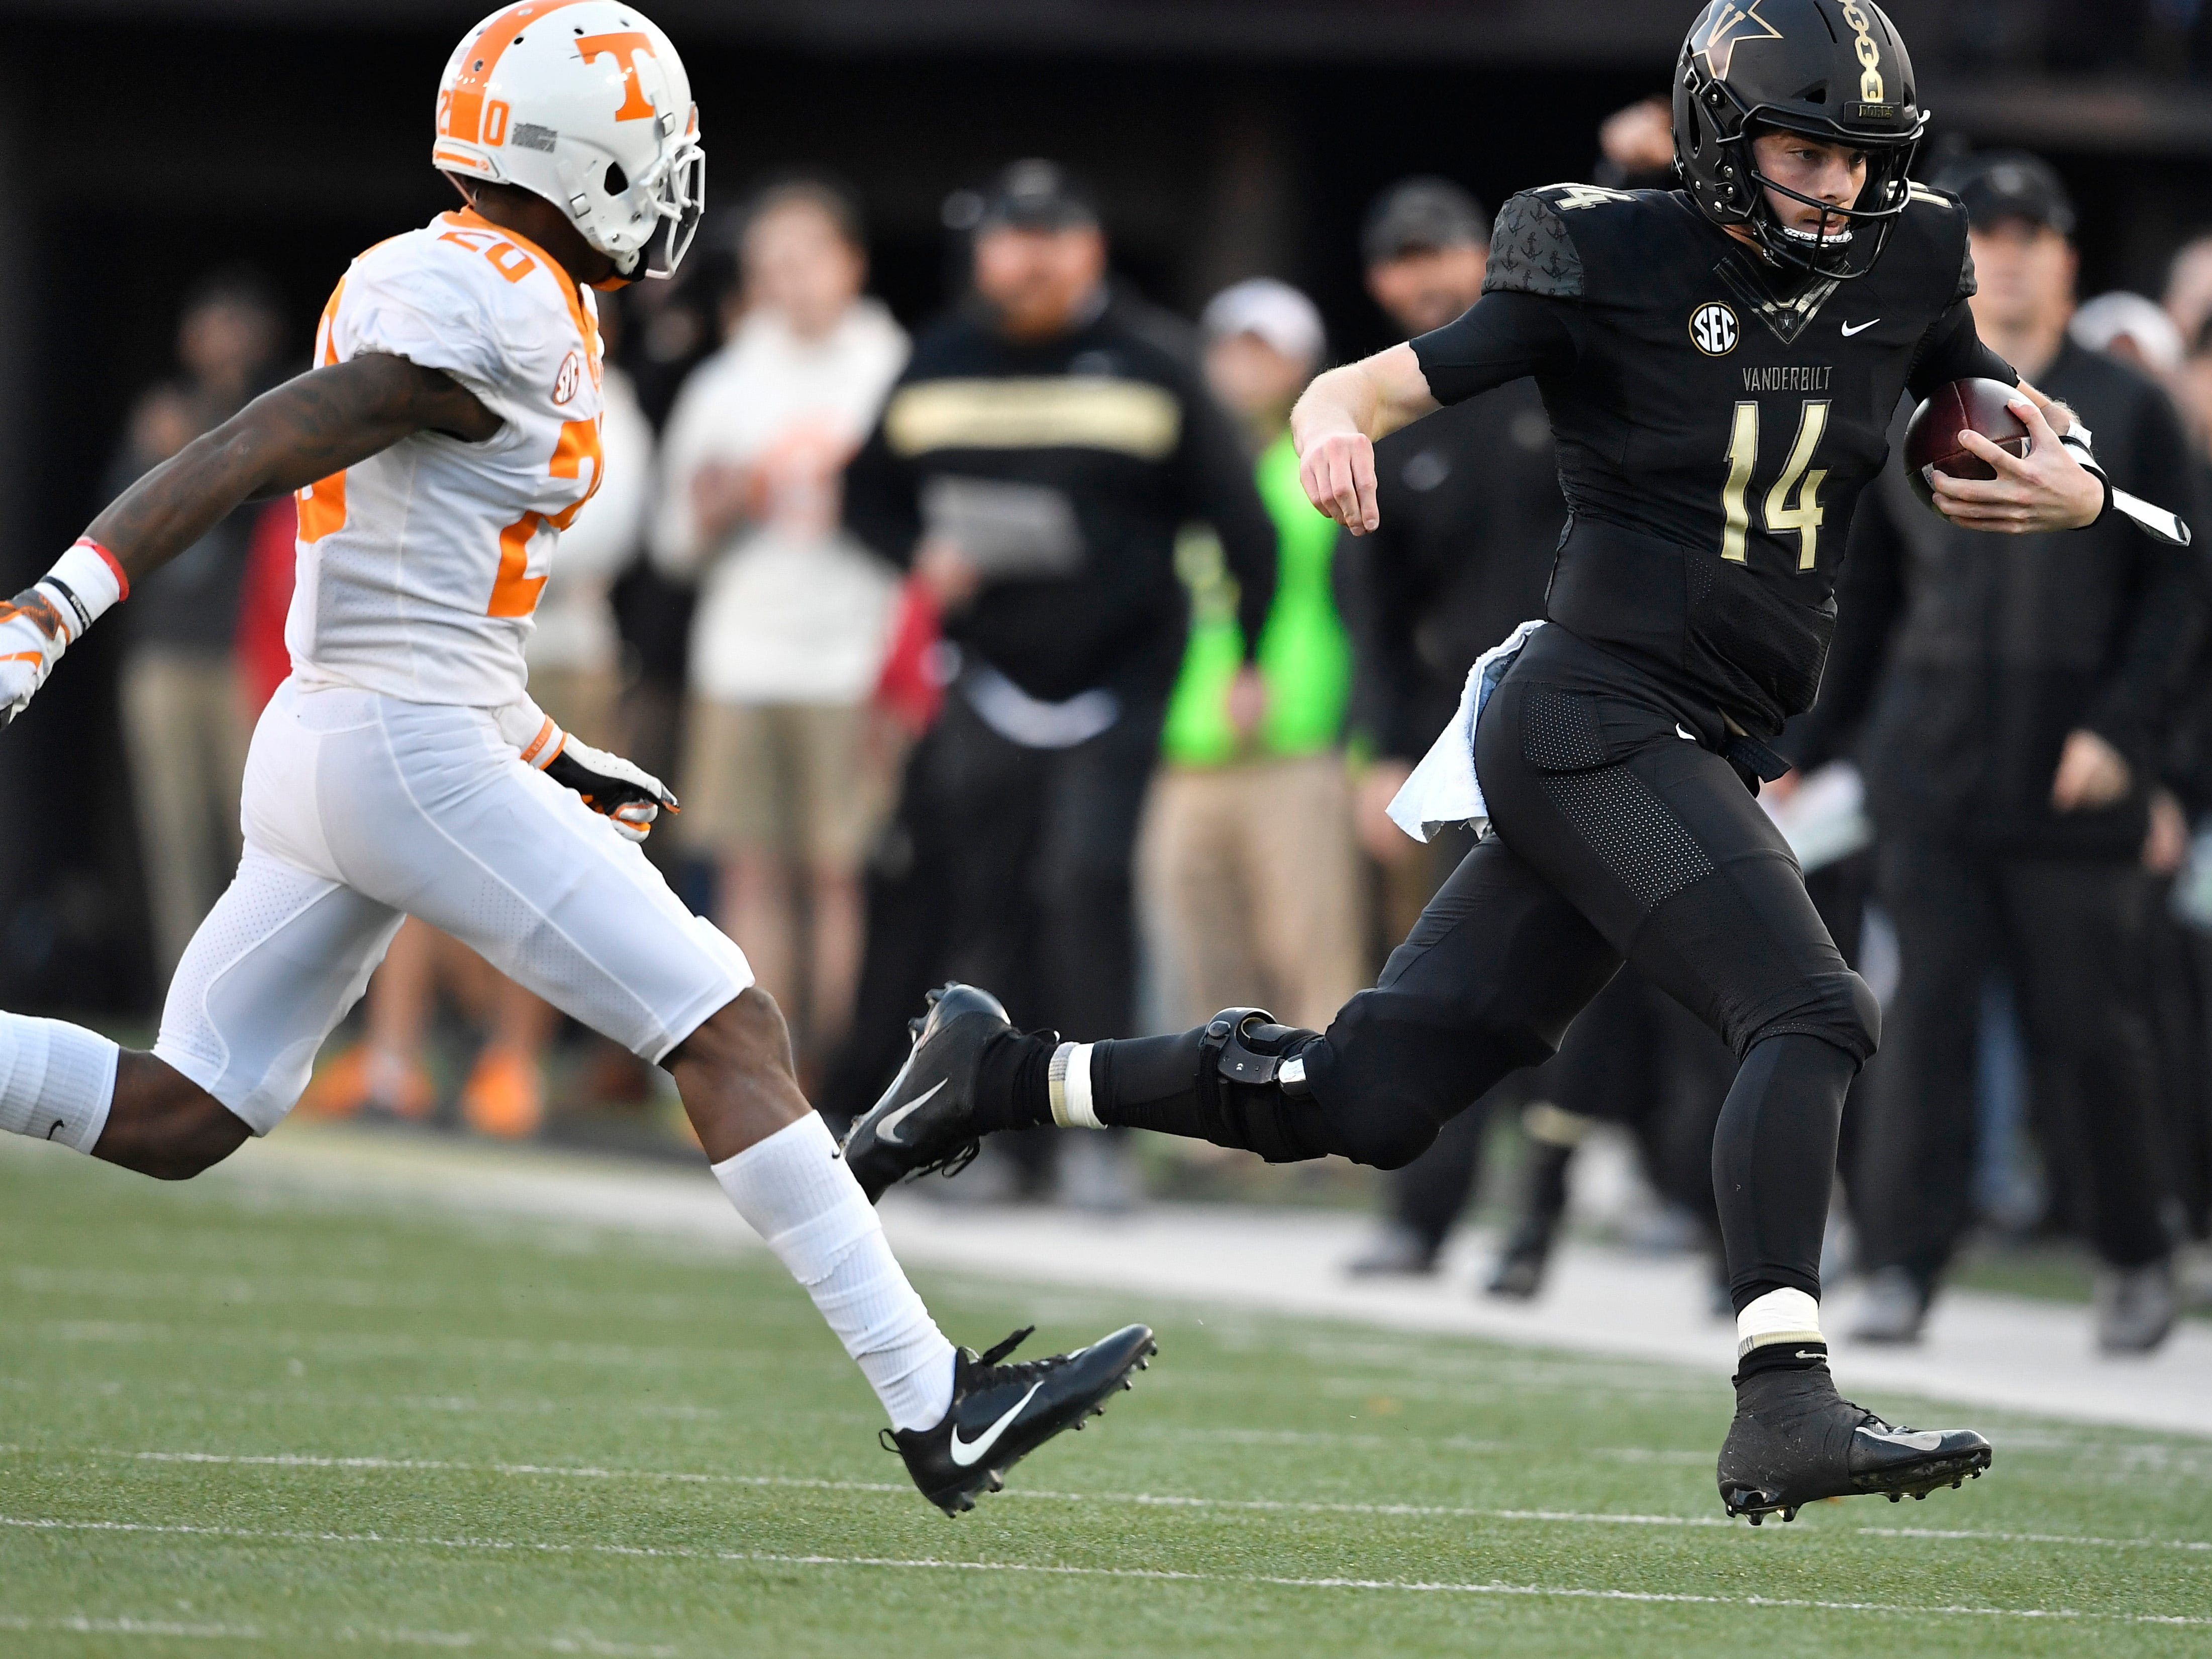 Vanderbilt quarterback Kyle Shurmur (14) scrambles for a first down defended by Tennessee defensive back Bryce Thompson (20) in the first half  at Vanderbilt Stadium Saturday, Nov. 24, 2018, in Nashville, Tenn.